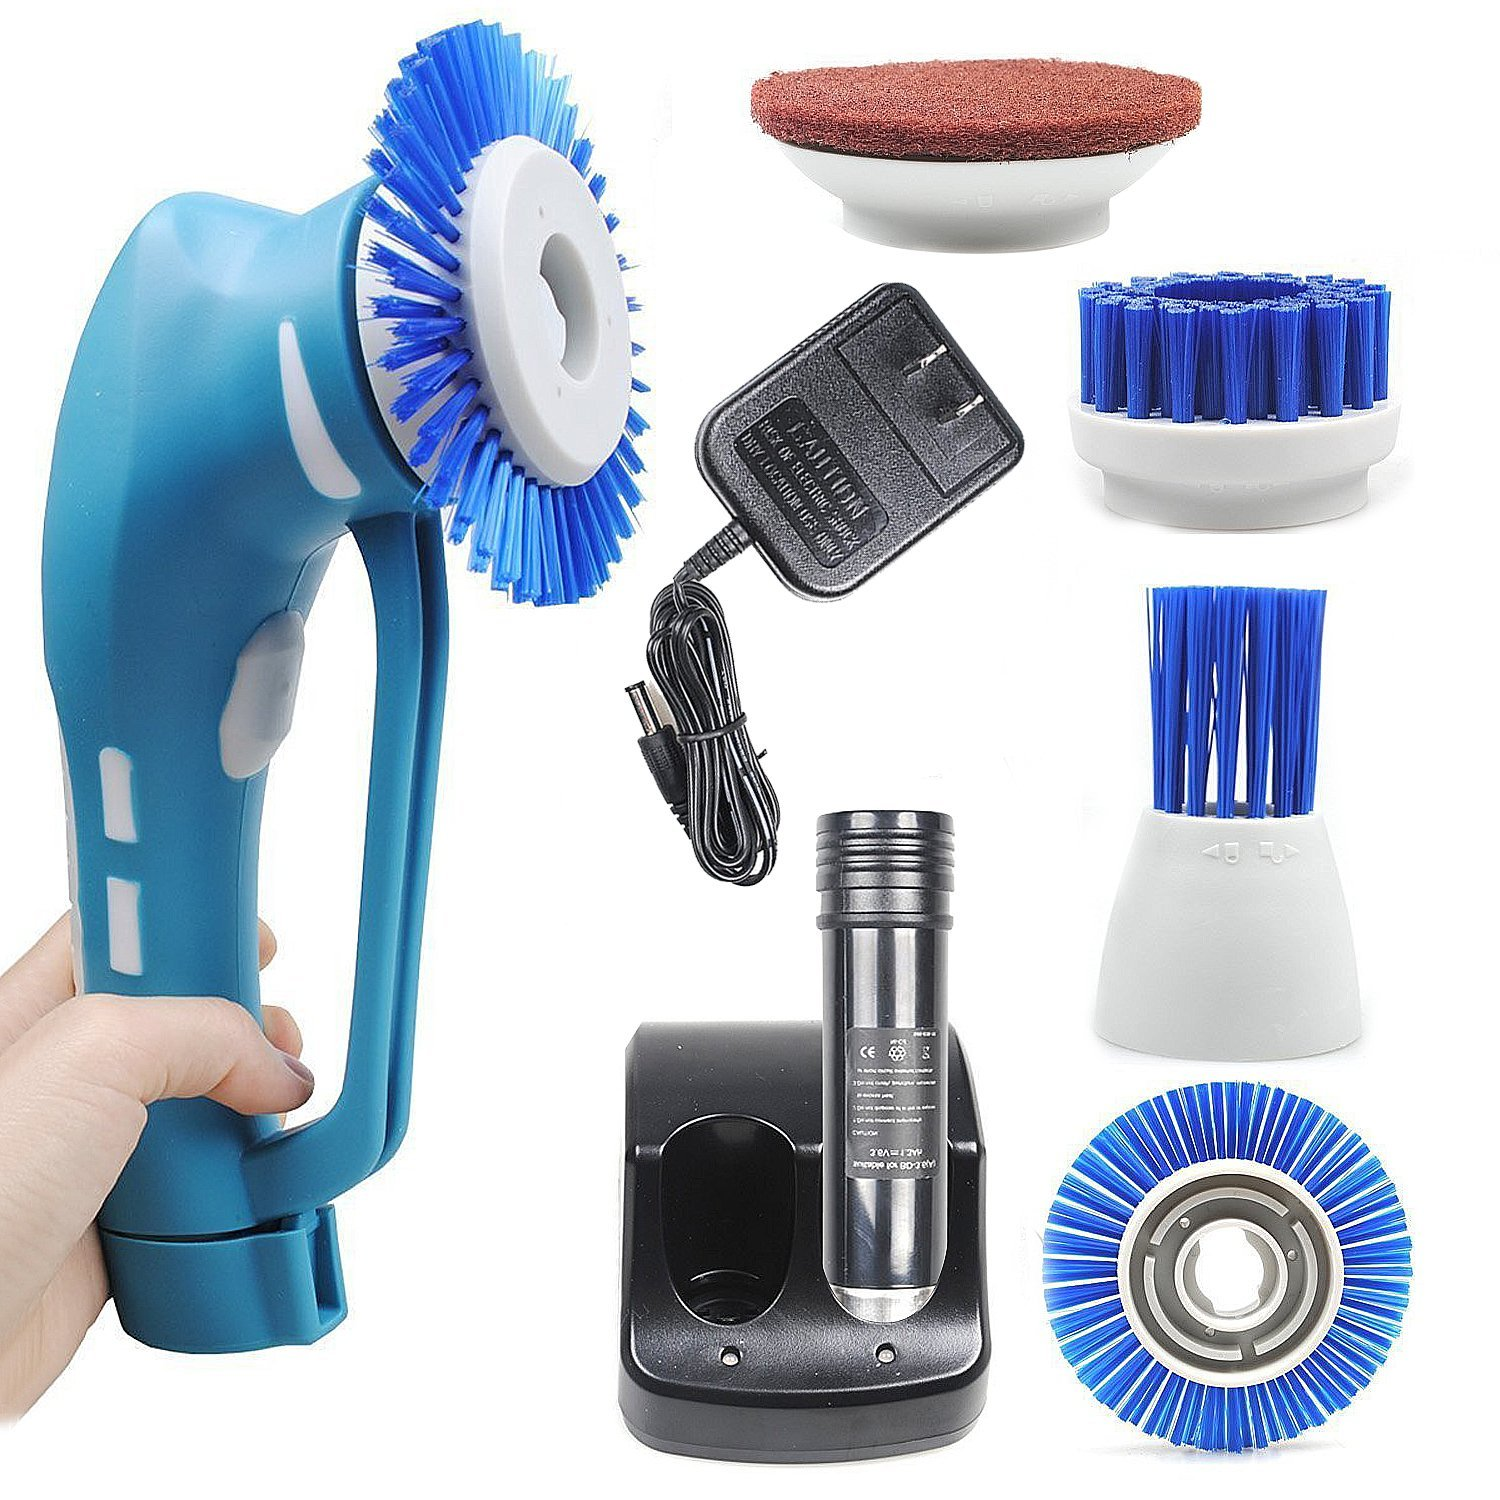 Spin Scrubber, Cordless Household Power Scrubber with Rechargeable Battery for Bathroom and Kitchen 1 Battery 4 Brushes 1 Scouring Pad